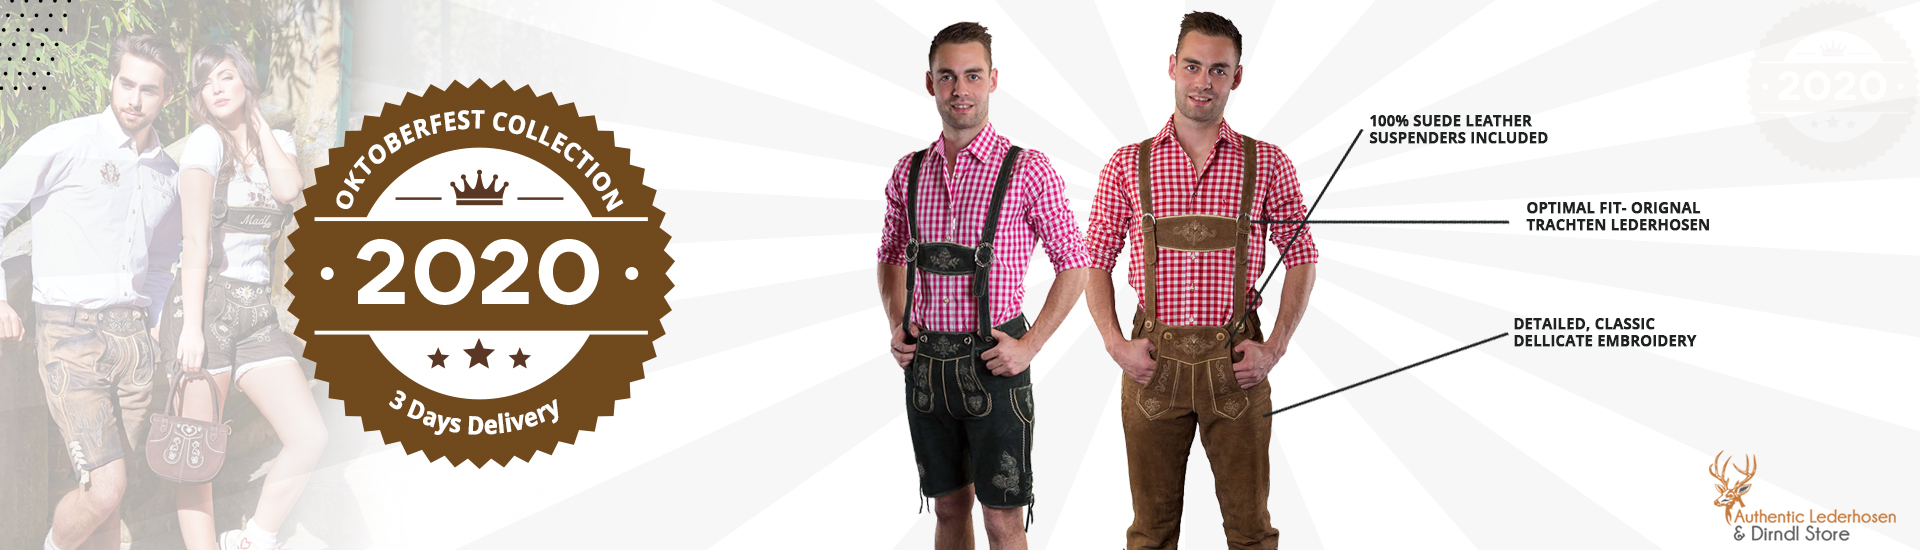 Oktoberfest Collection 2020